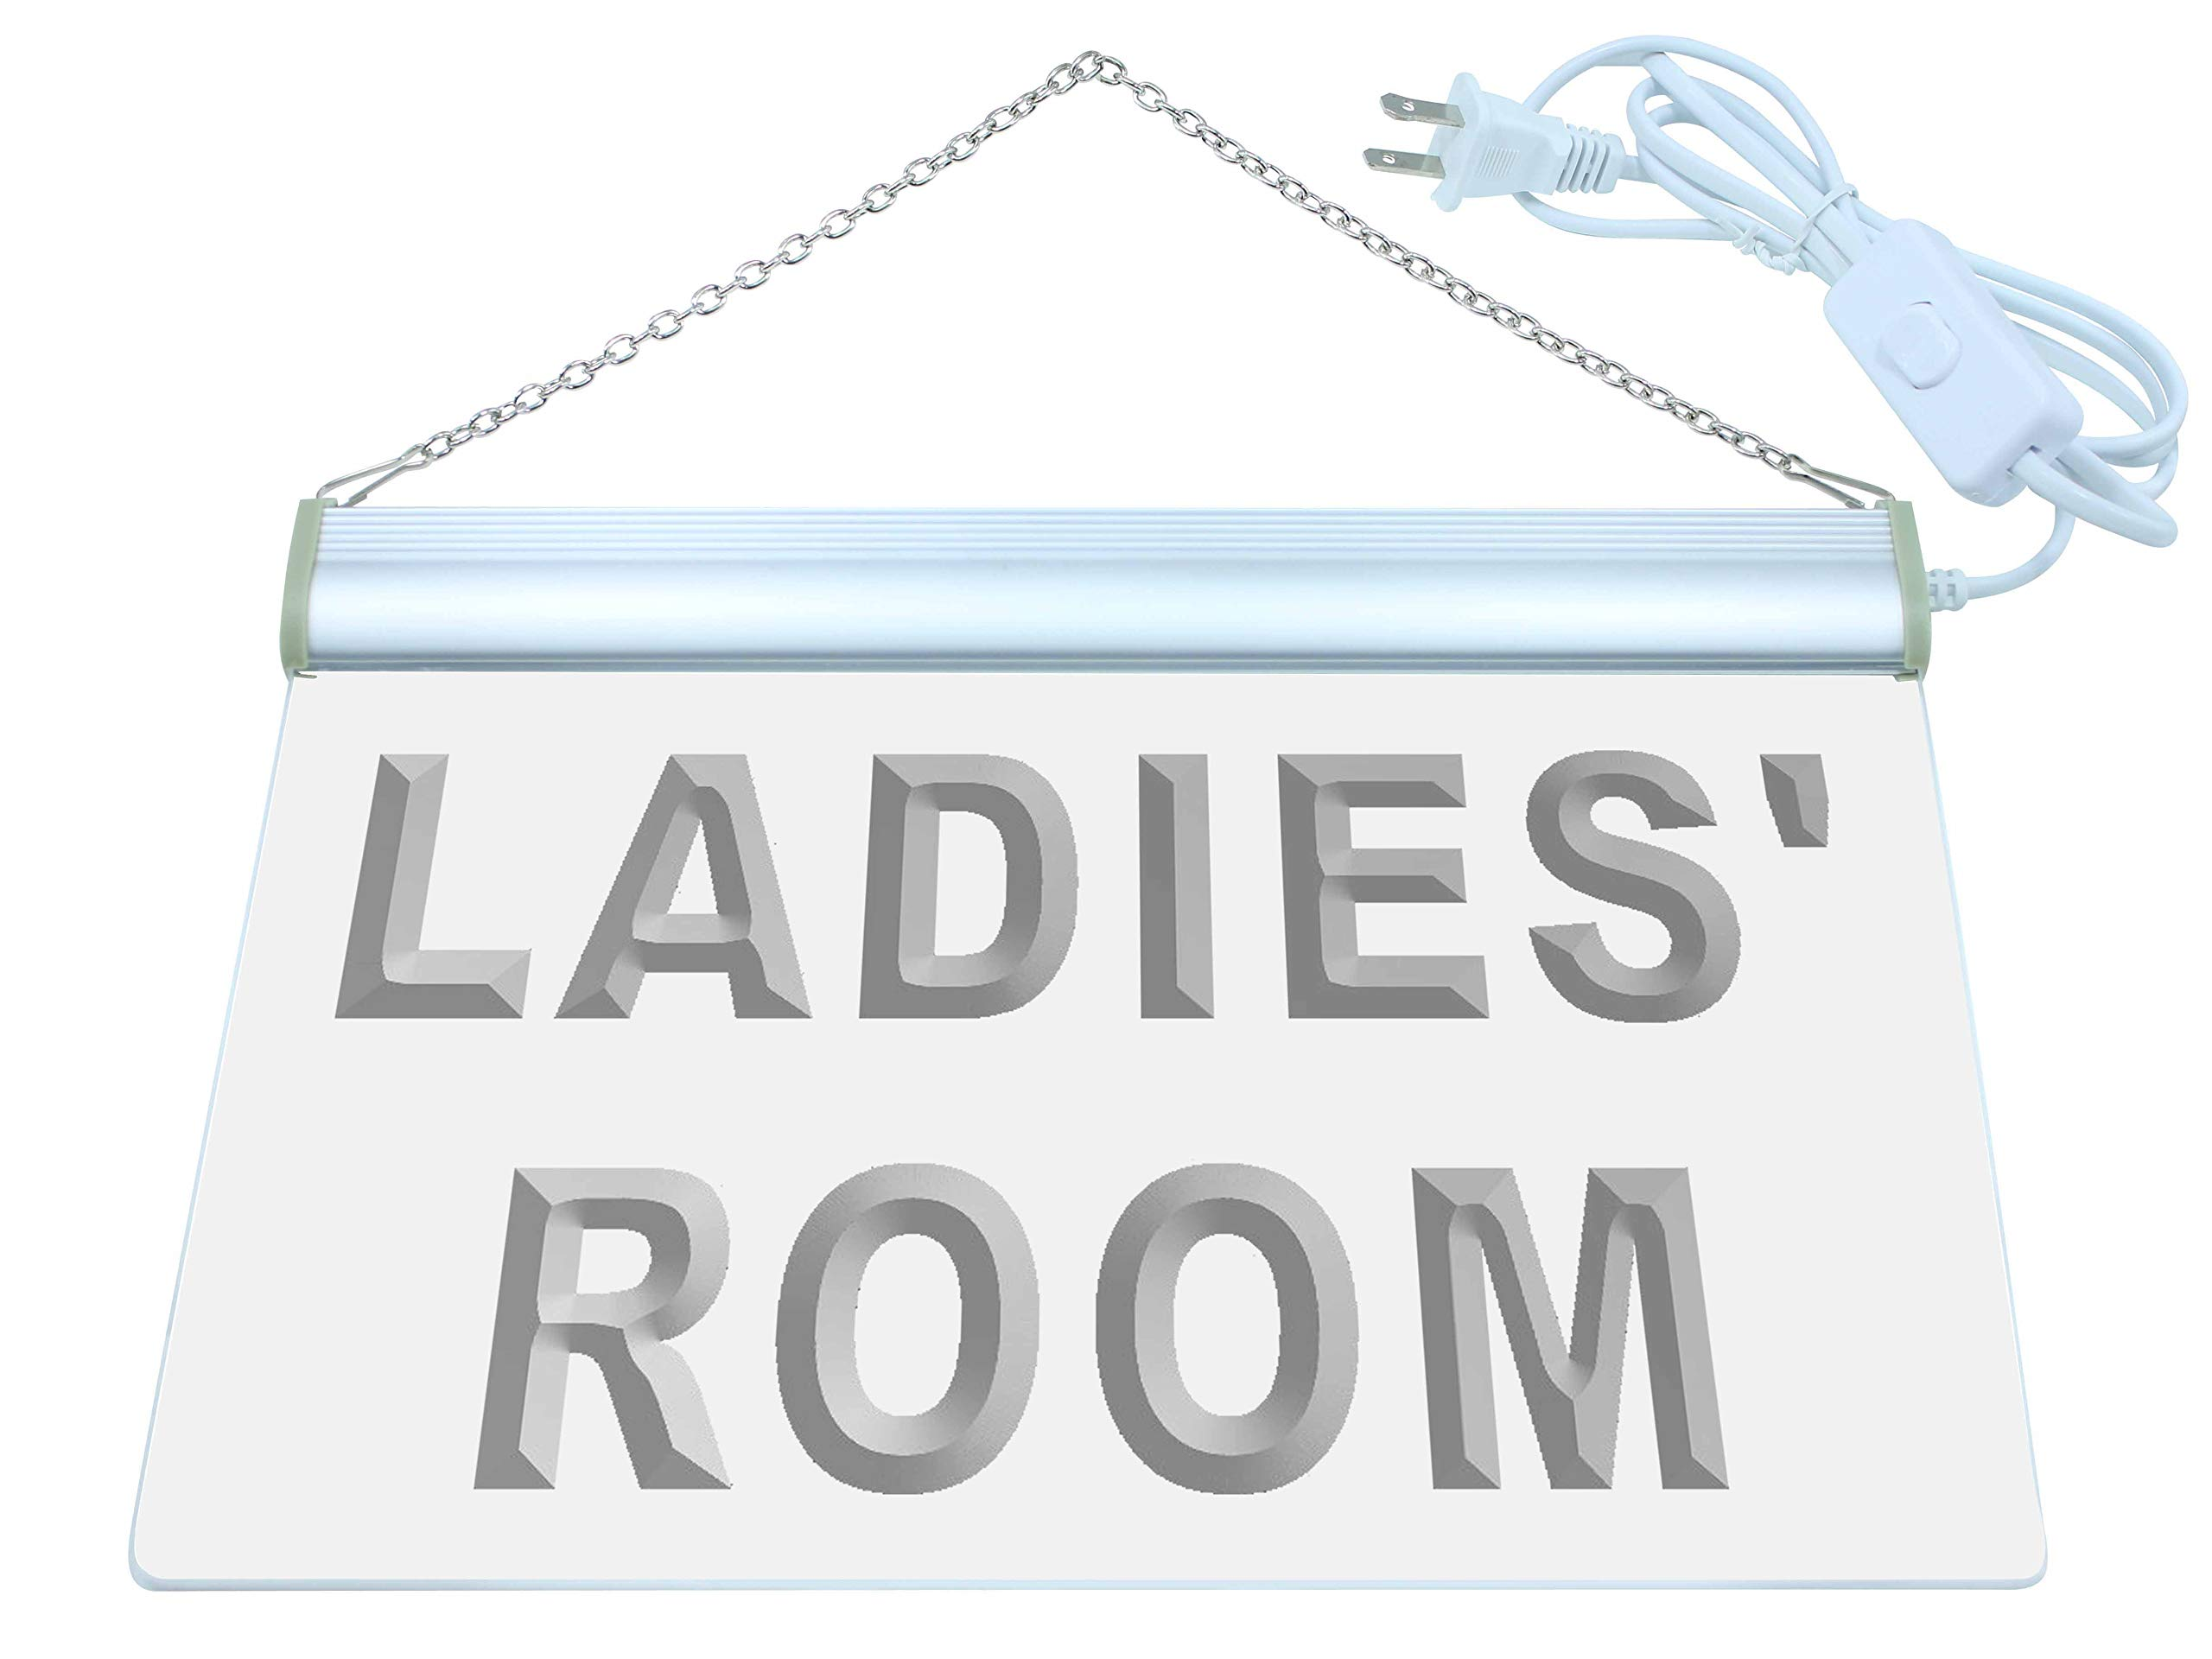 ADV PRO i630-b LADIES' ROOM TOILET Washroom Neon Light Sign